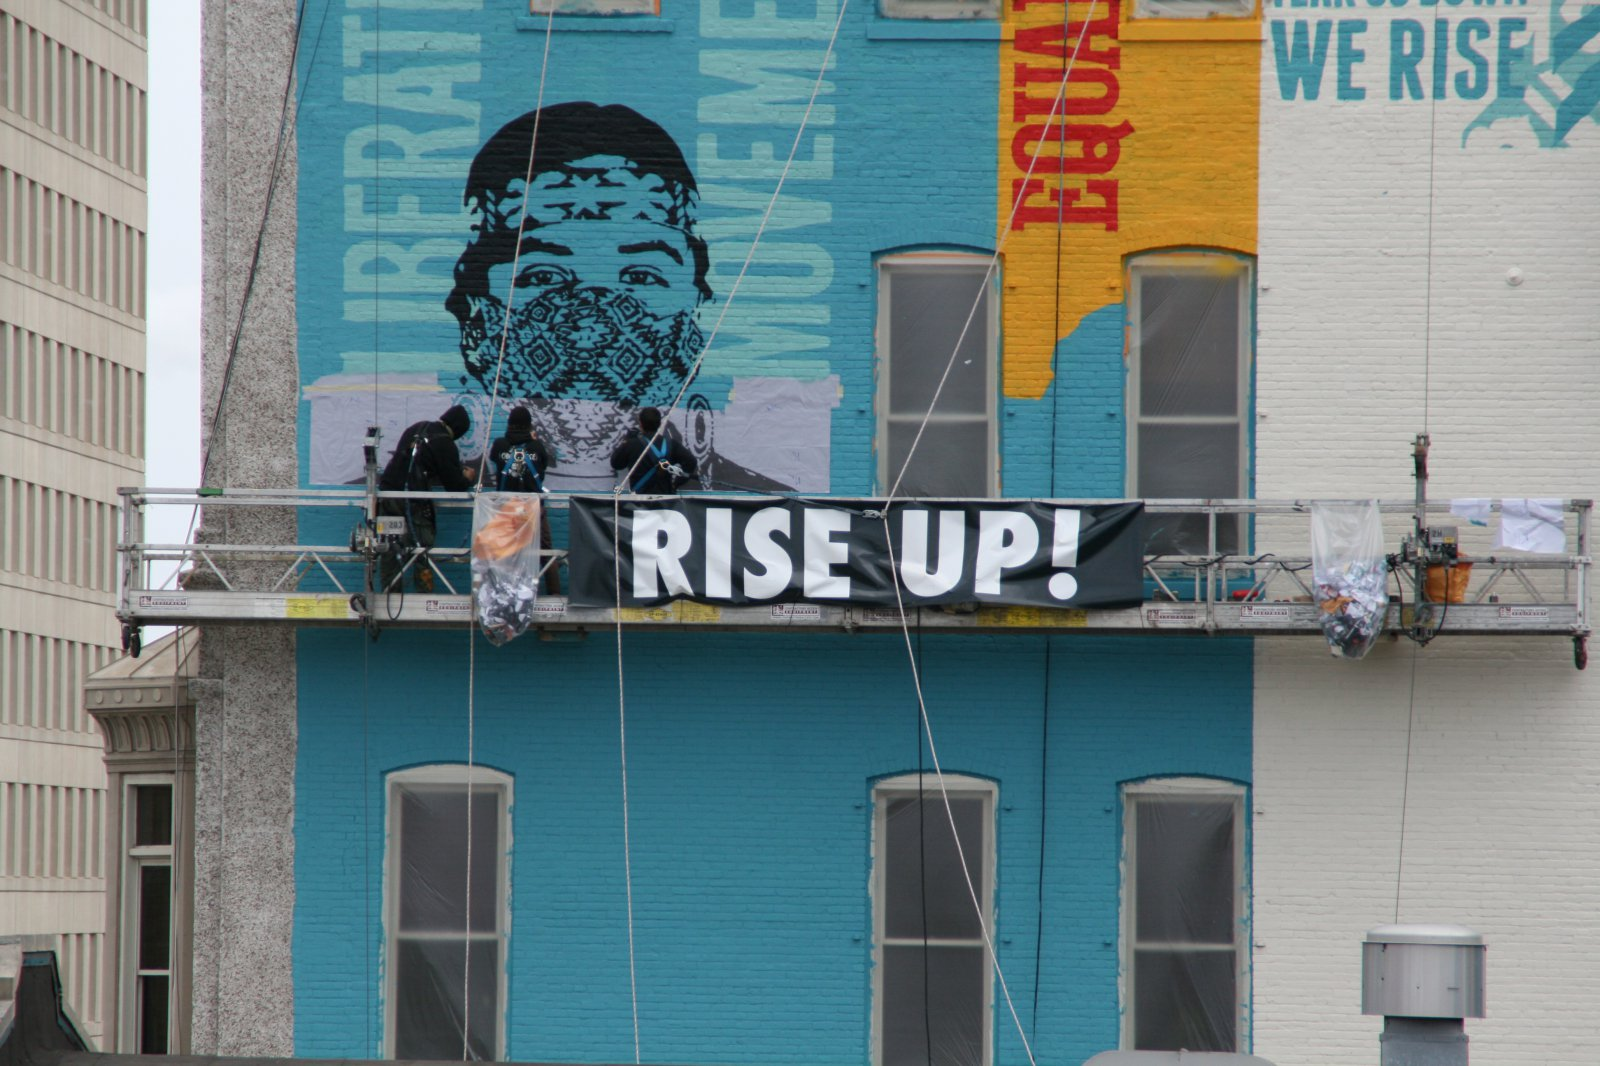 Obey Giant Painting Mural